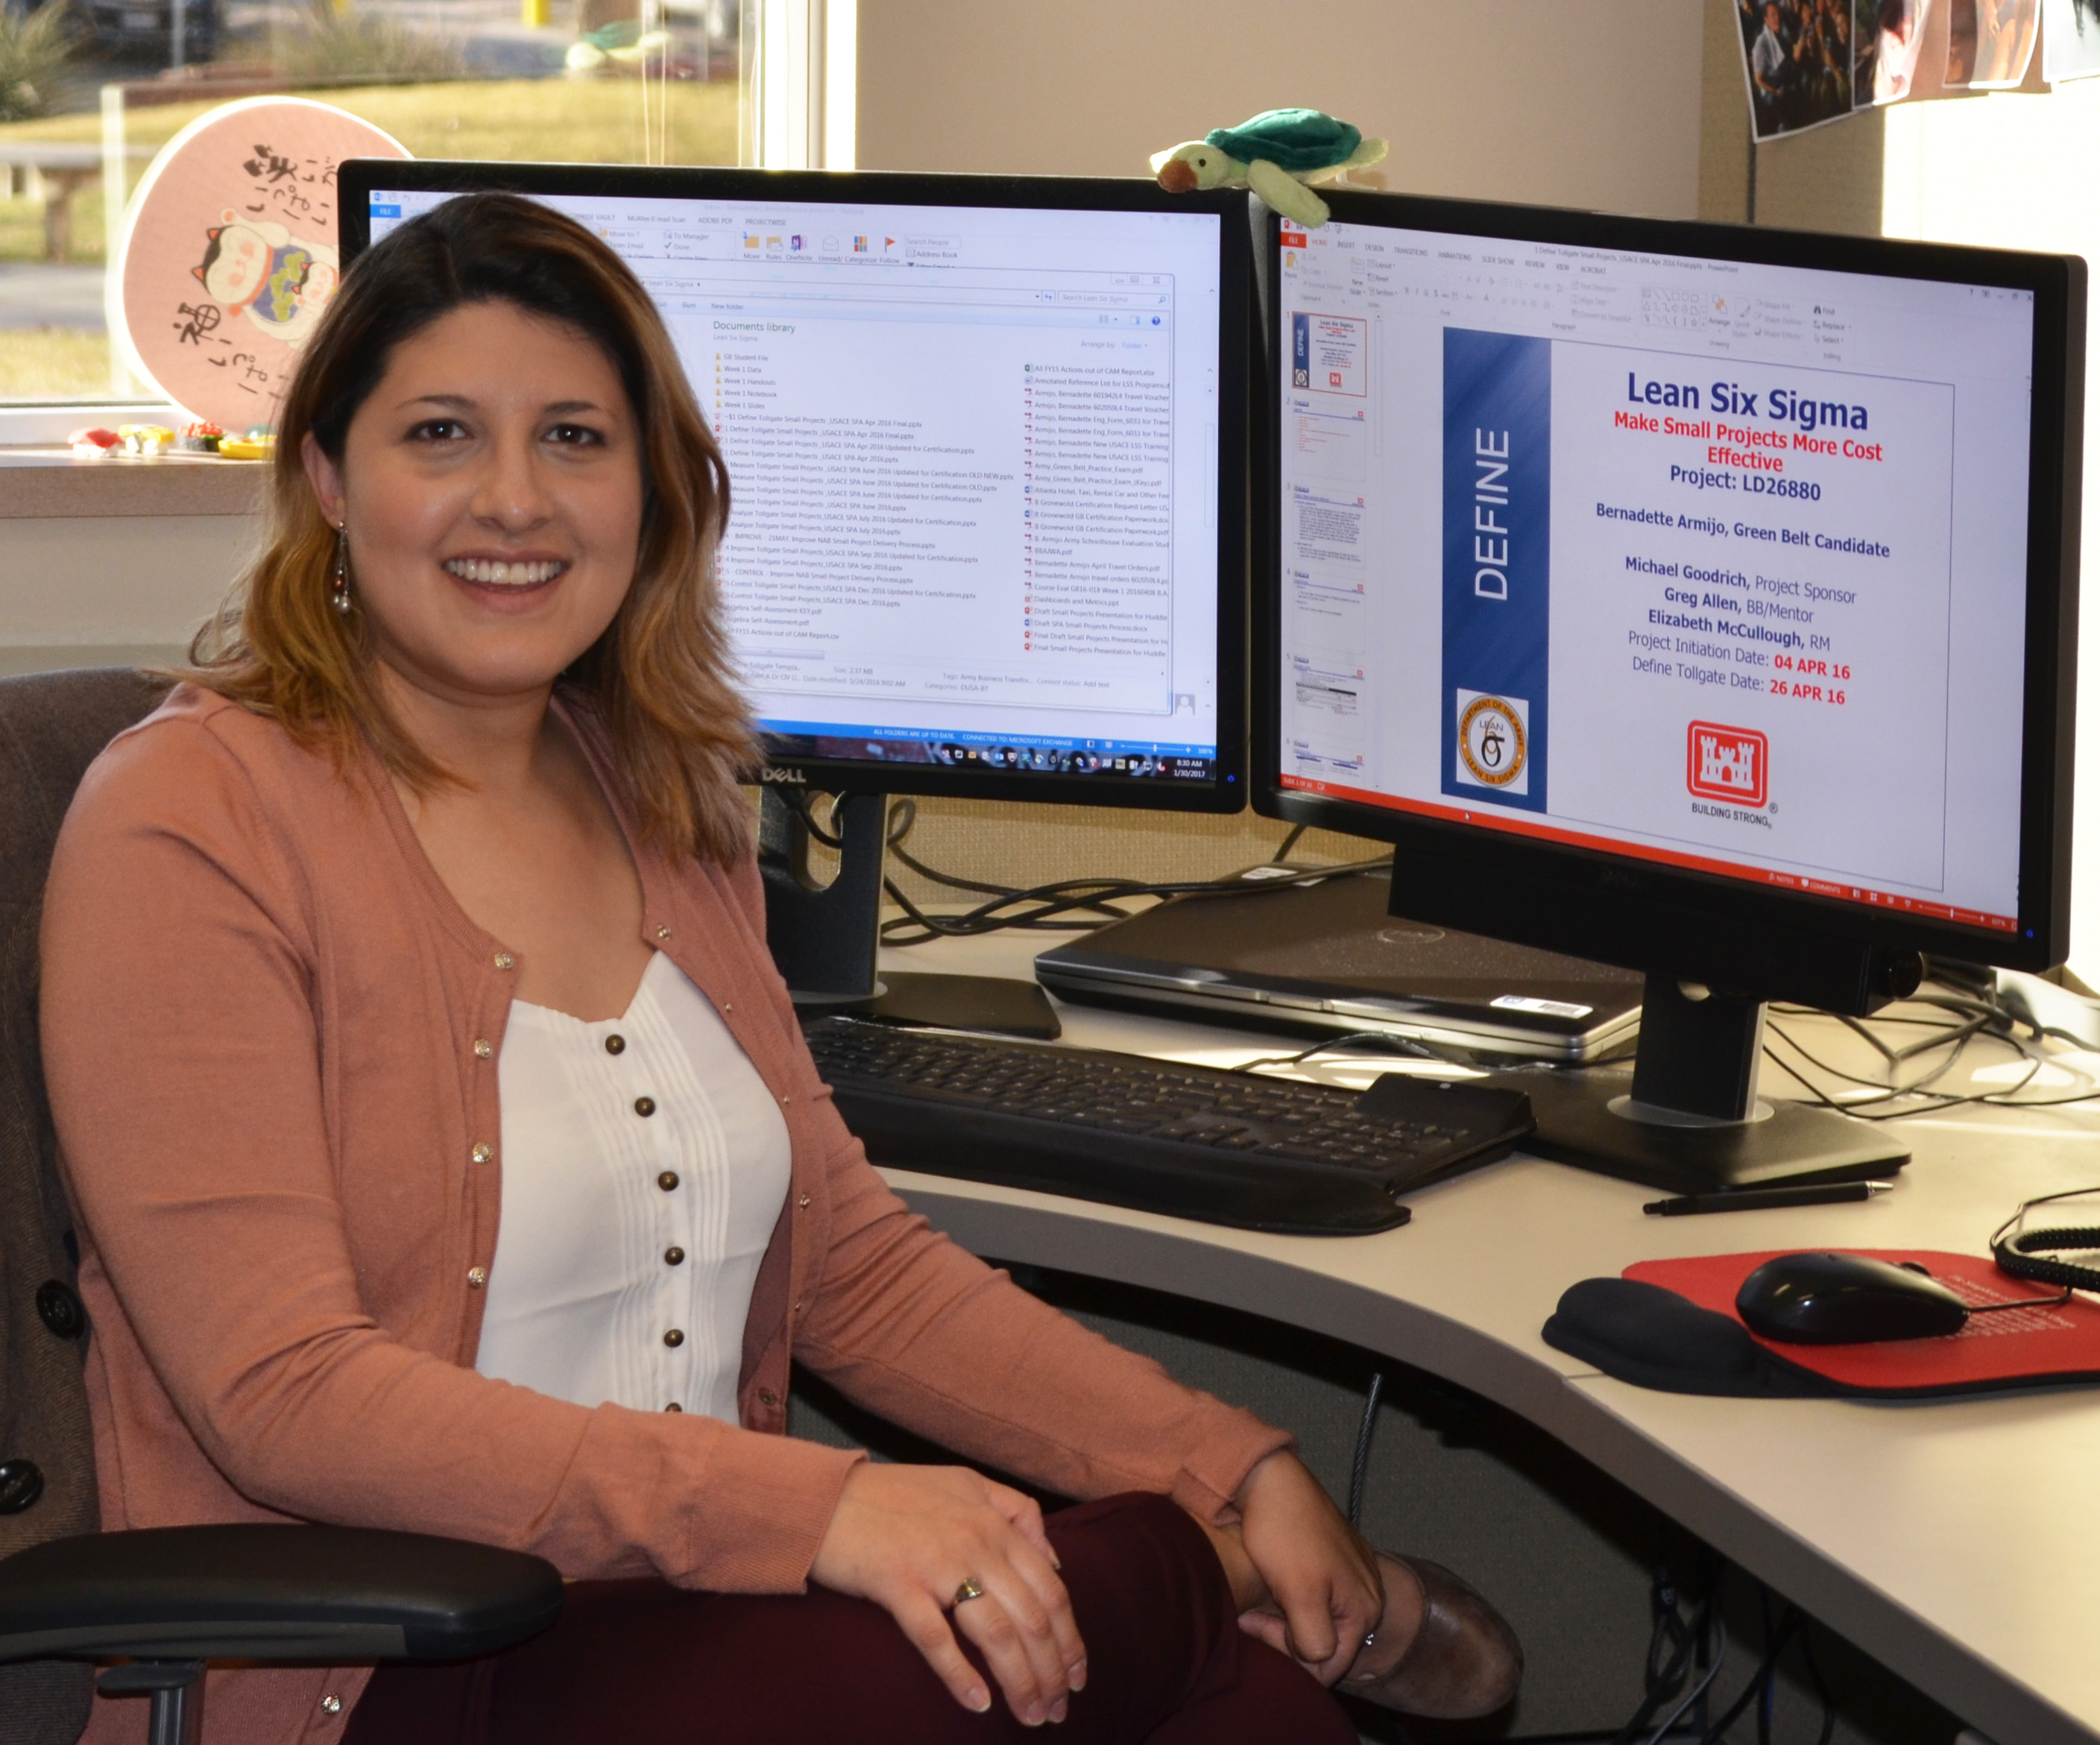 Districts First Lean Six Sigma Green Belt Certified Employee Helps